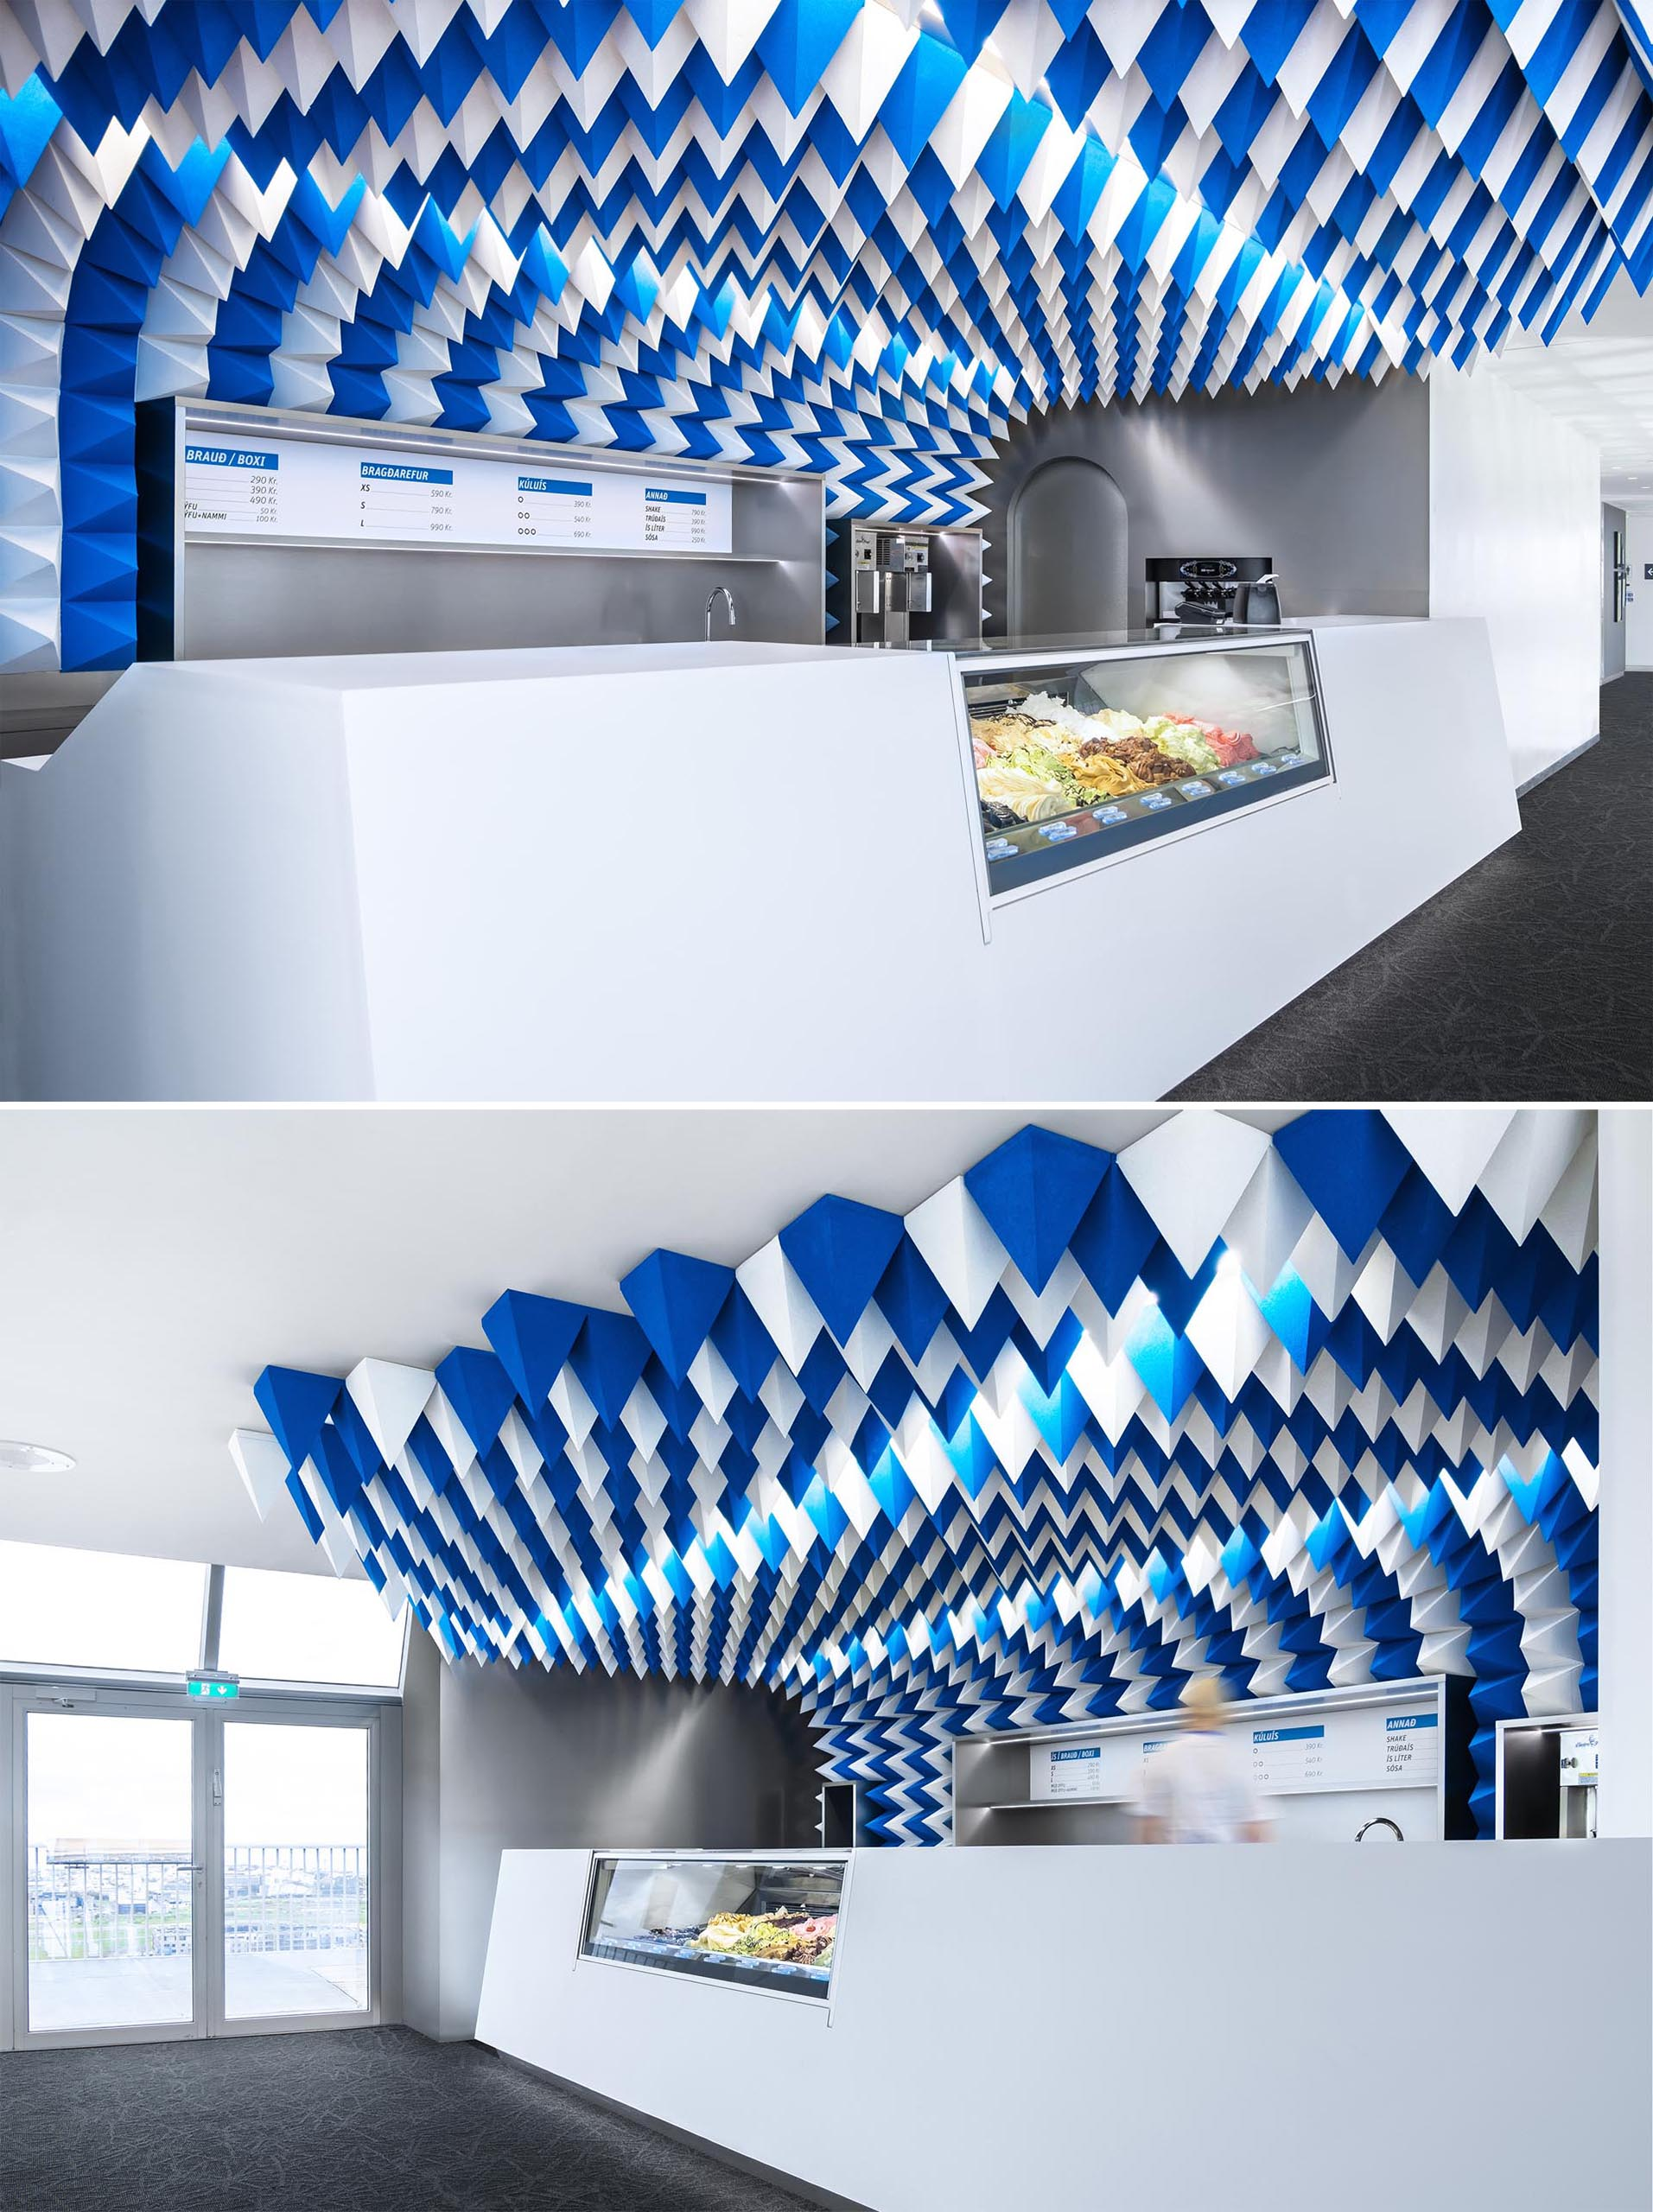 Blue and white foam pyramids were used to create a sculptural ceiling installation.